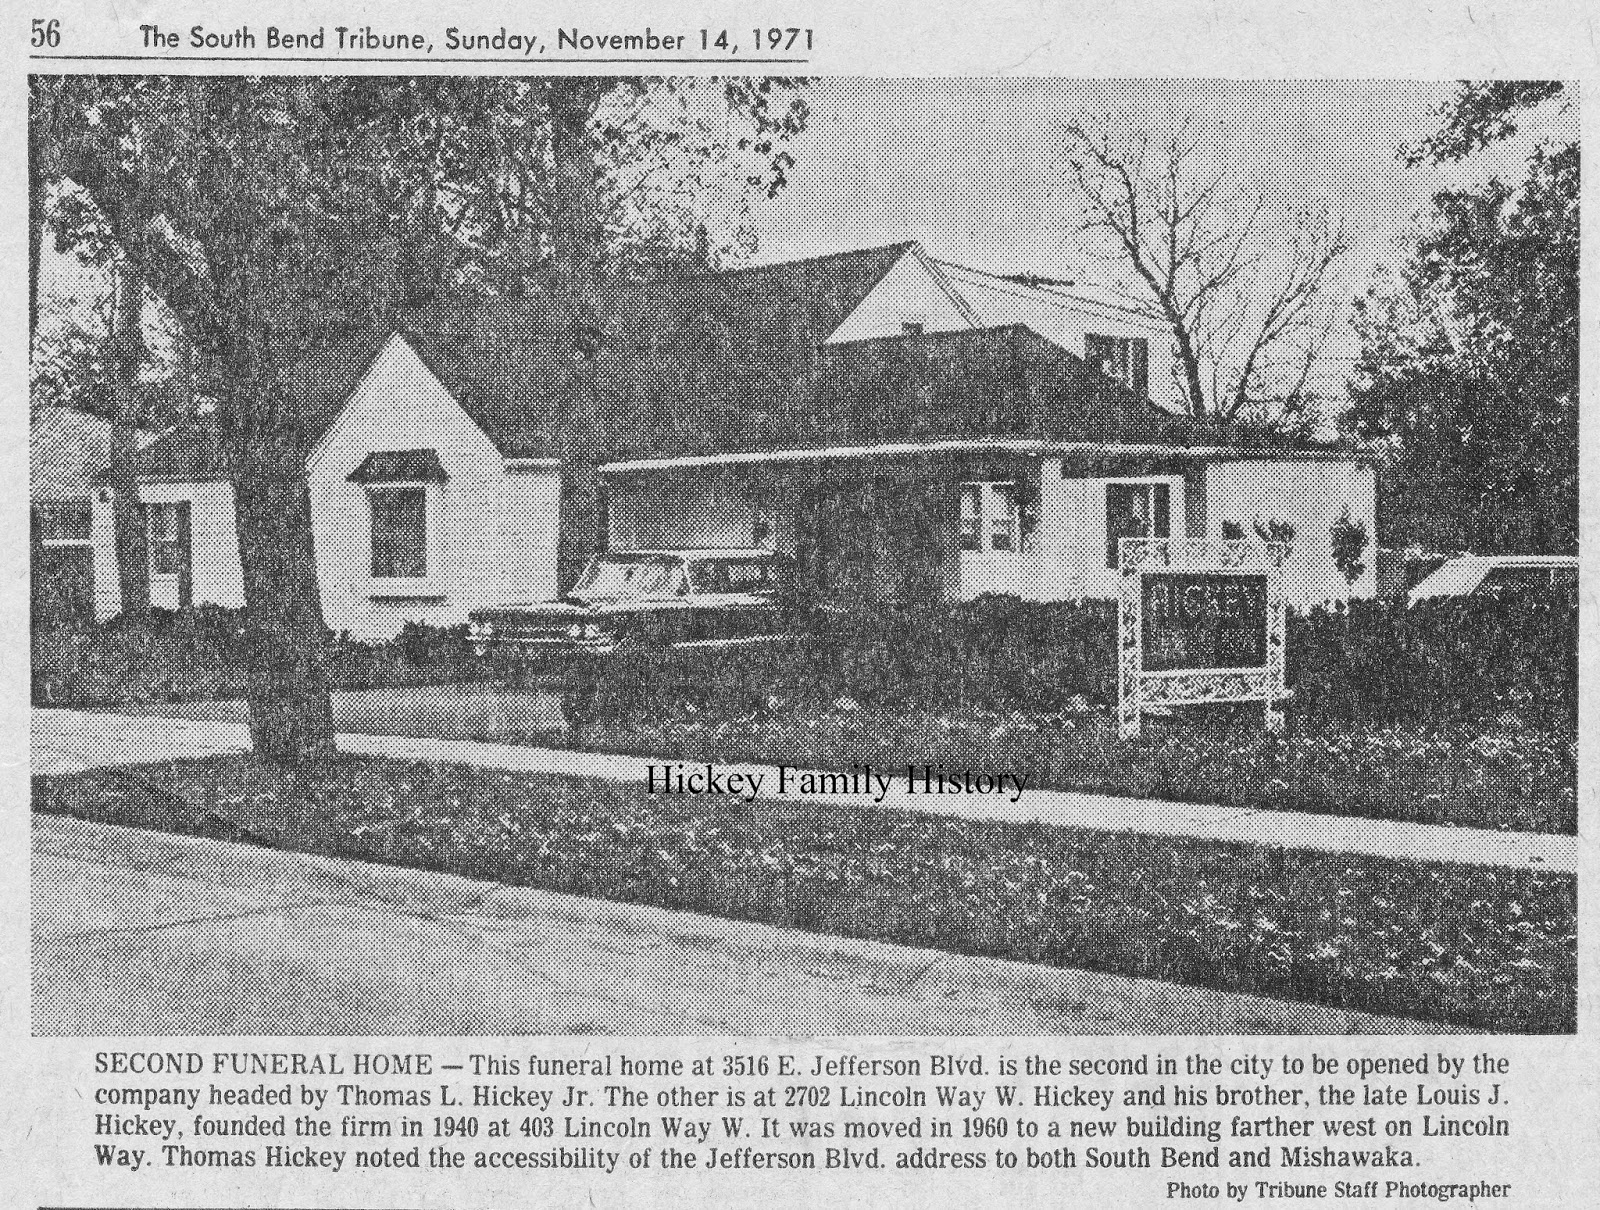 boulevard in south bend indiana the funeral home was the second for the firm the other larger funeral home was located at 2702 lincoln way west